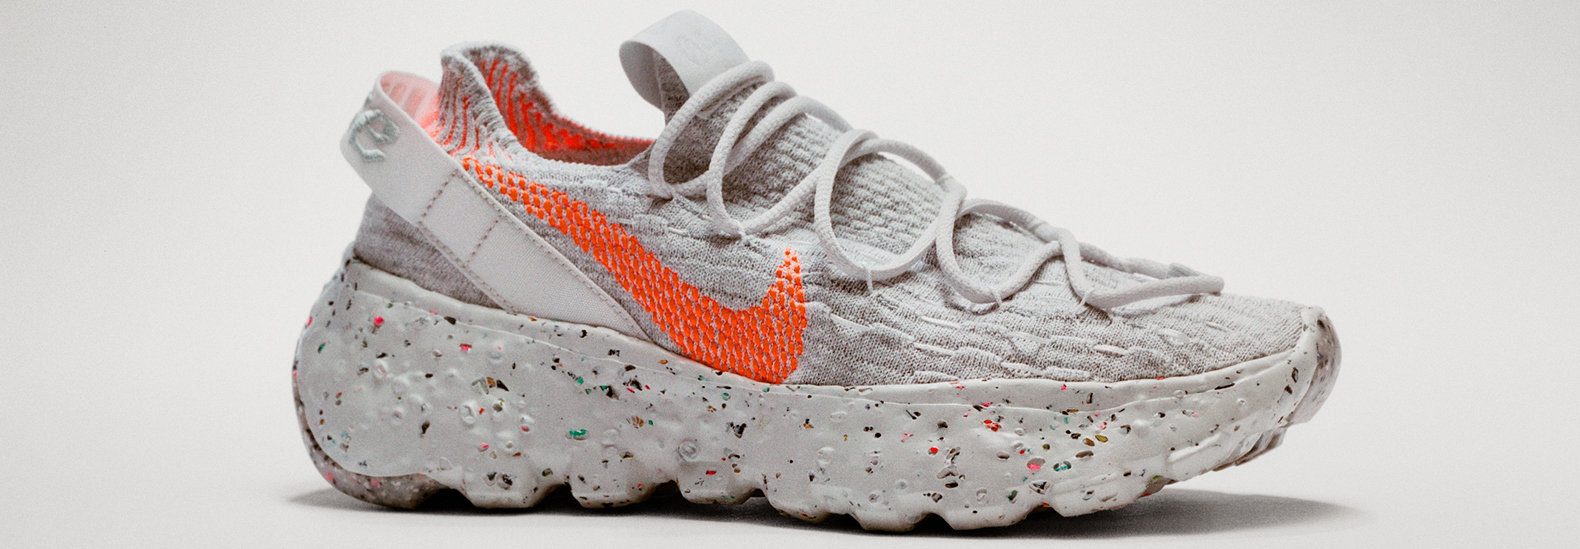 Nike Shoes Made From Ocean Plastic